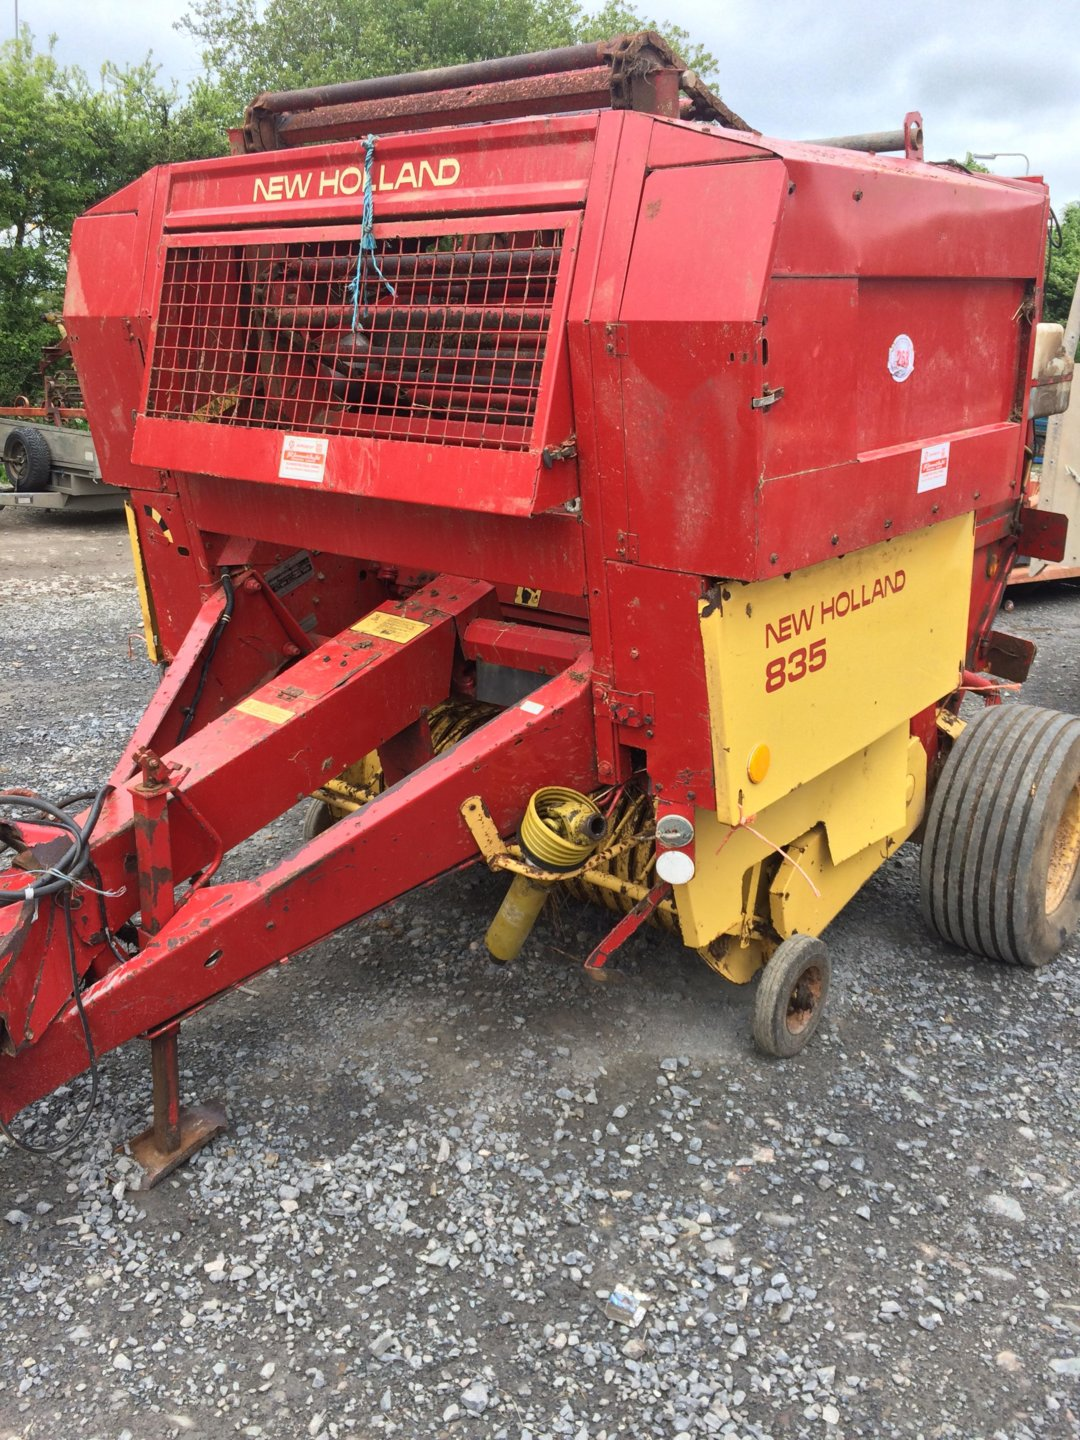 New holland 835 round baler | The Farming Forum